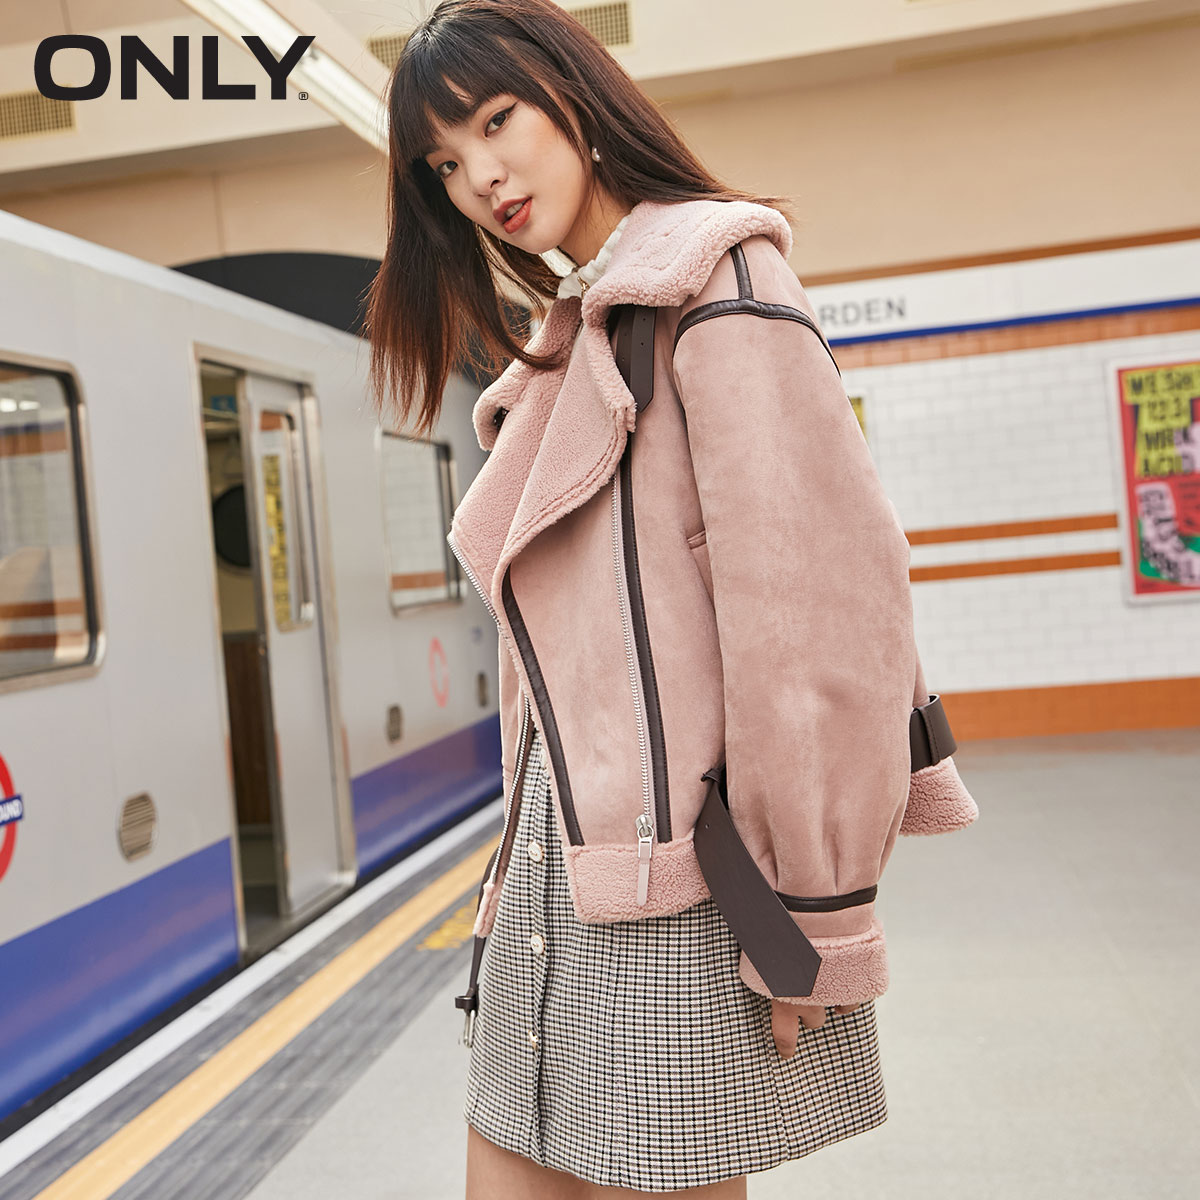 ONLY2020 winter new short suede lapel fried street motorcycle jacket jacket female 1204PU009